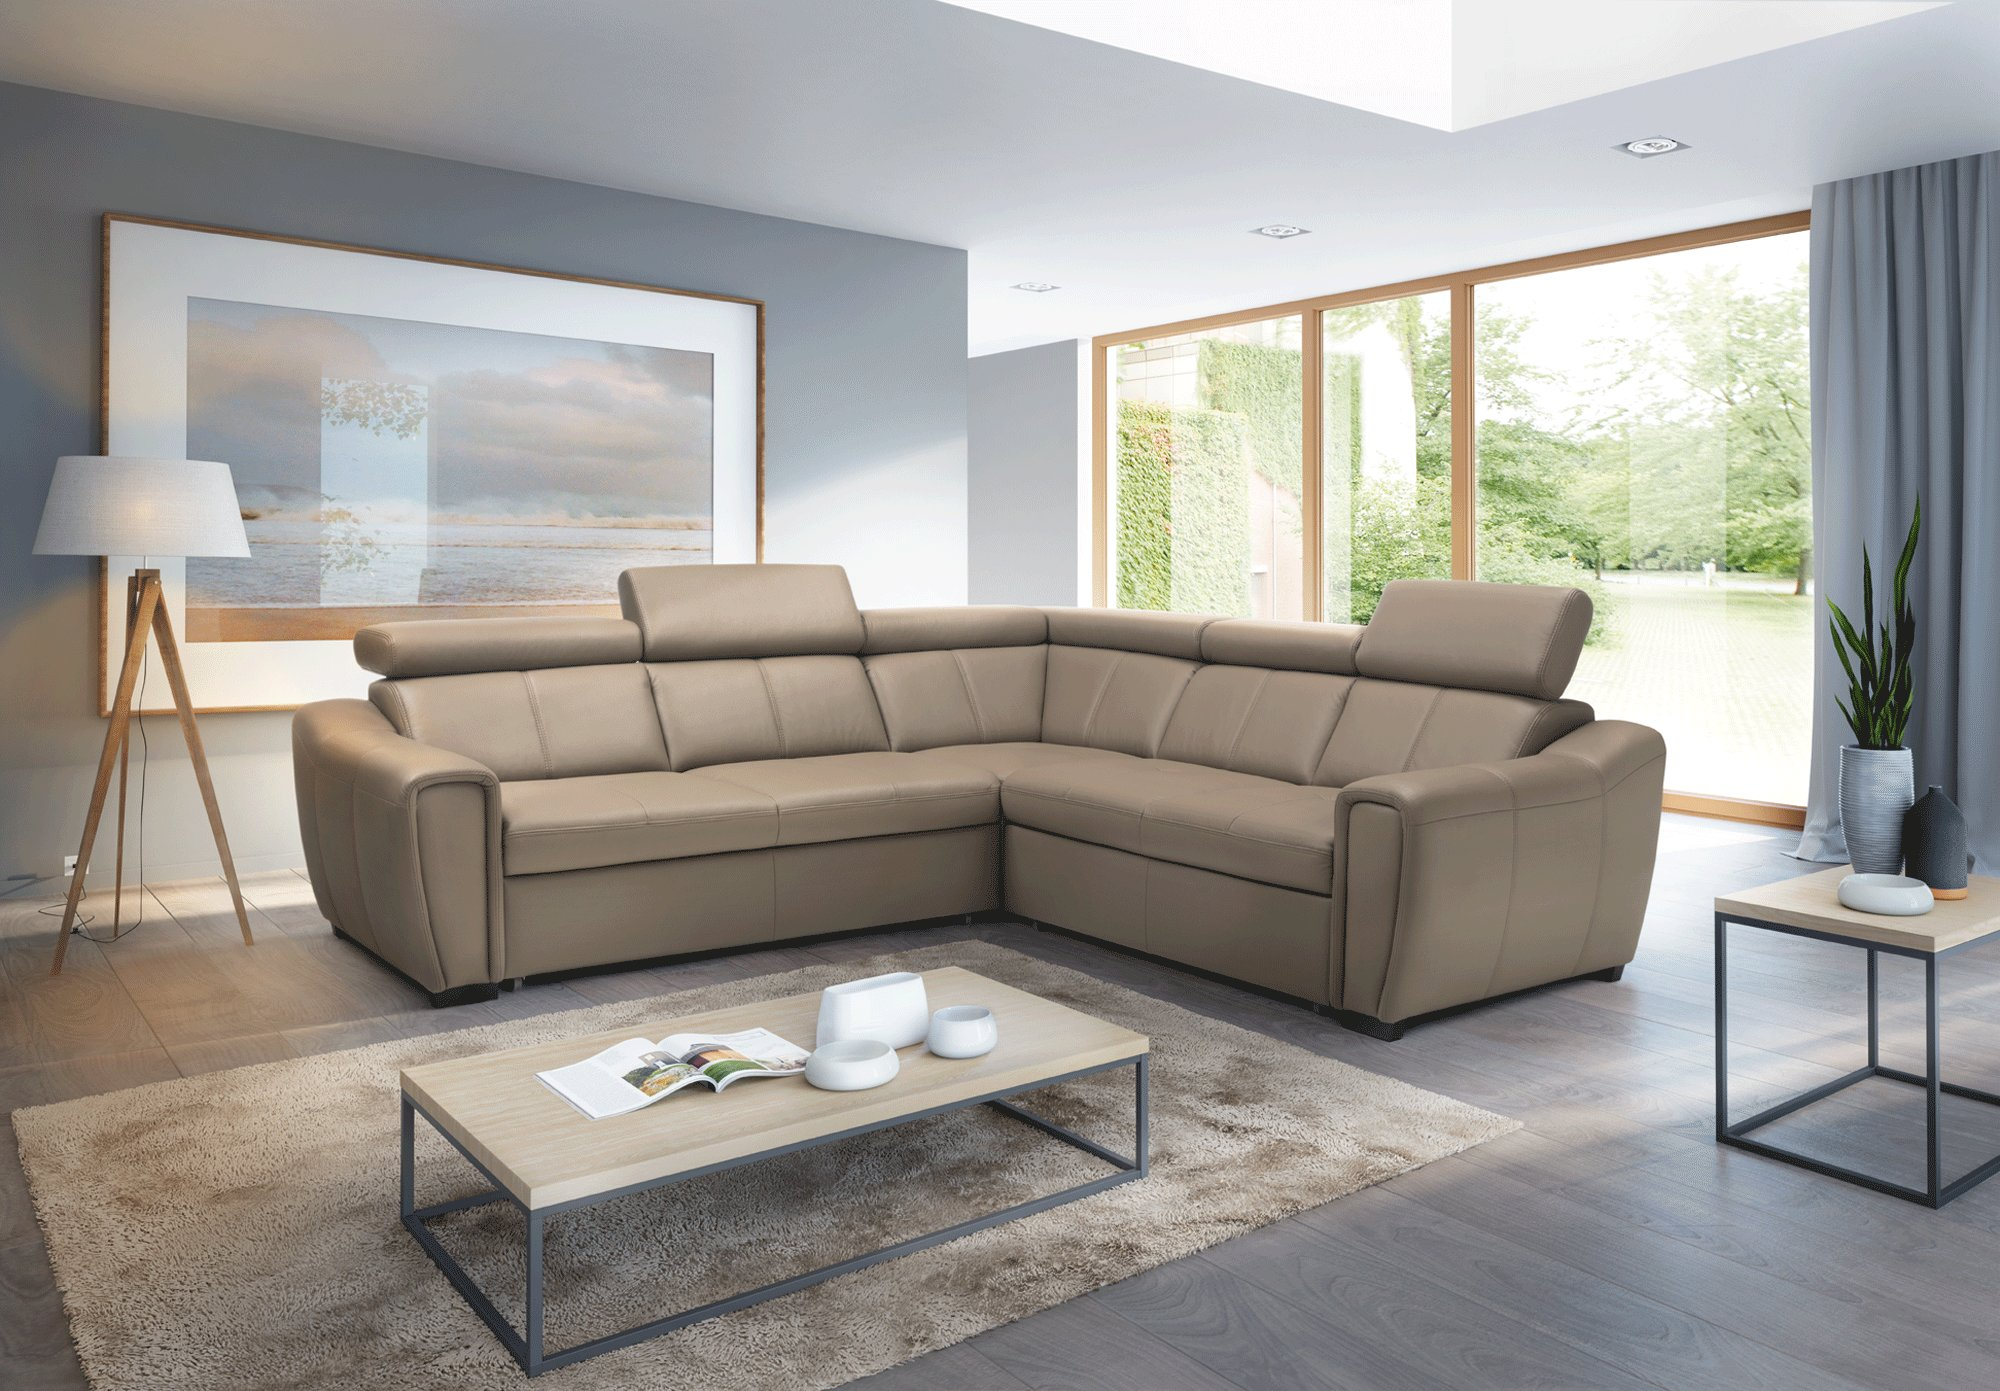 Marvelous Luxury Covered In All Leather Sectional Dailytribune Chair Design For Home Dailytribuneorg